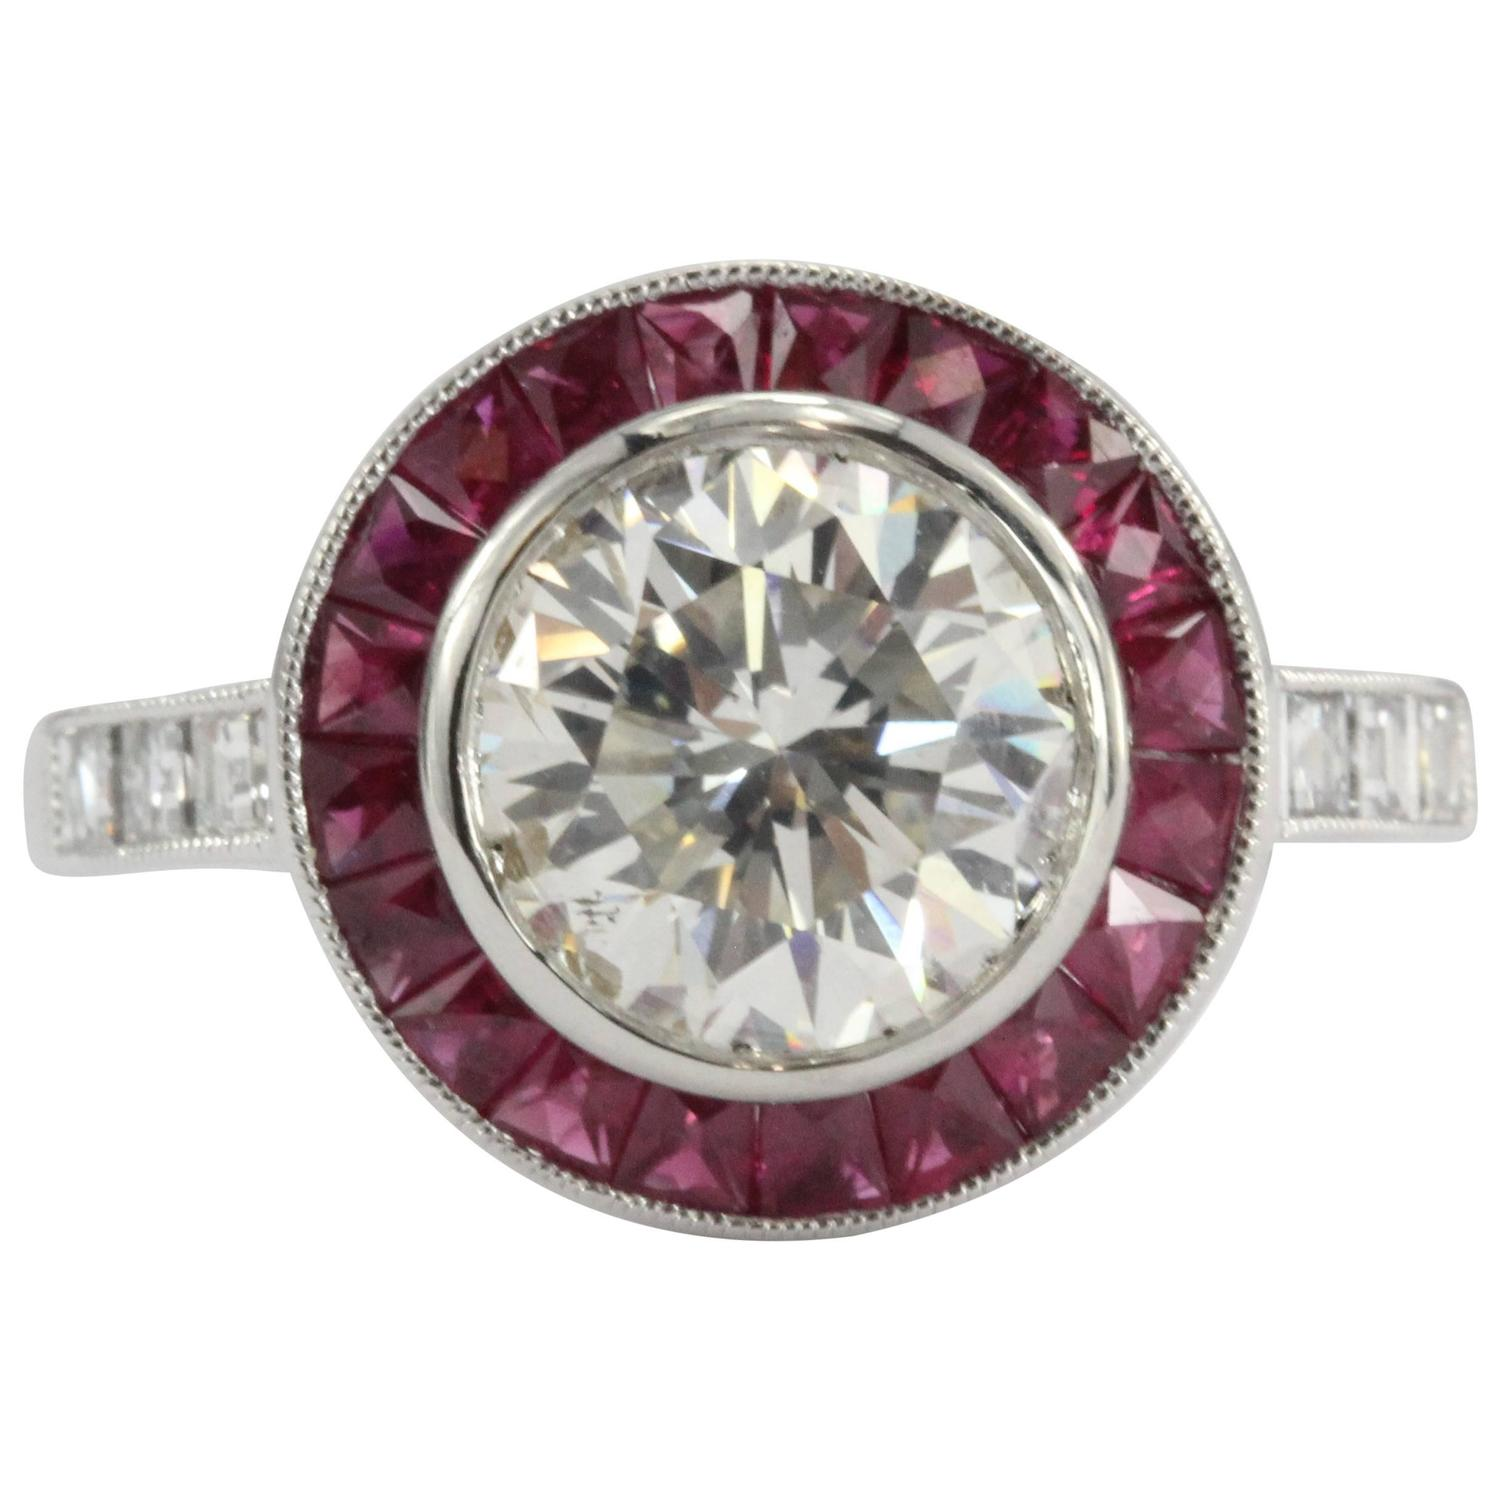 Art Deco Platinum 19 Carat Diamond And Ruby Engagement Ring At 1stdibs